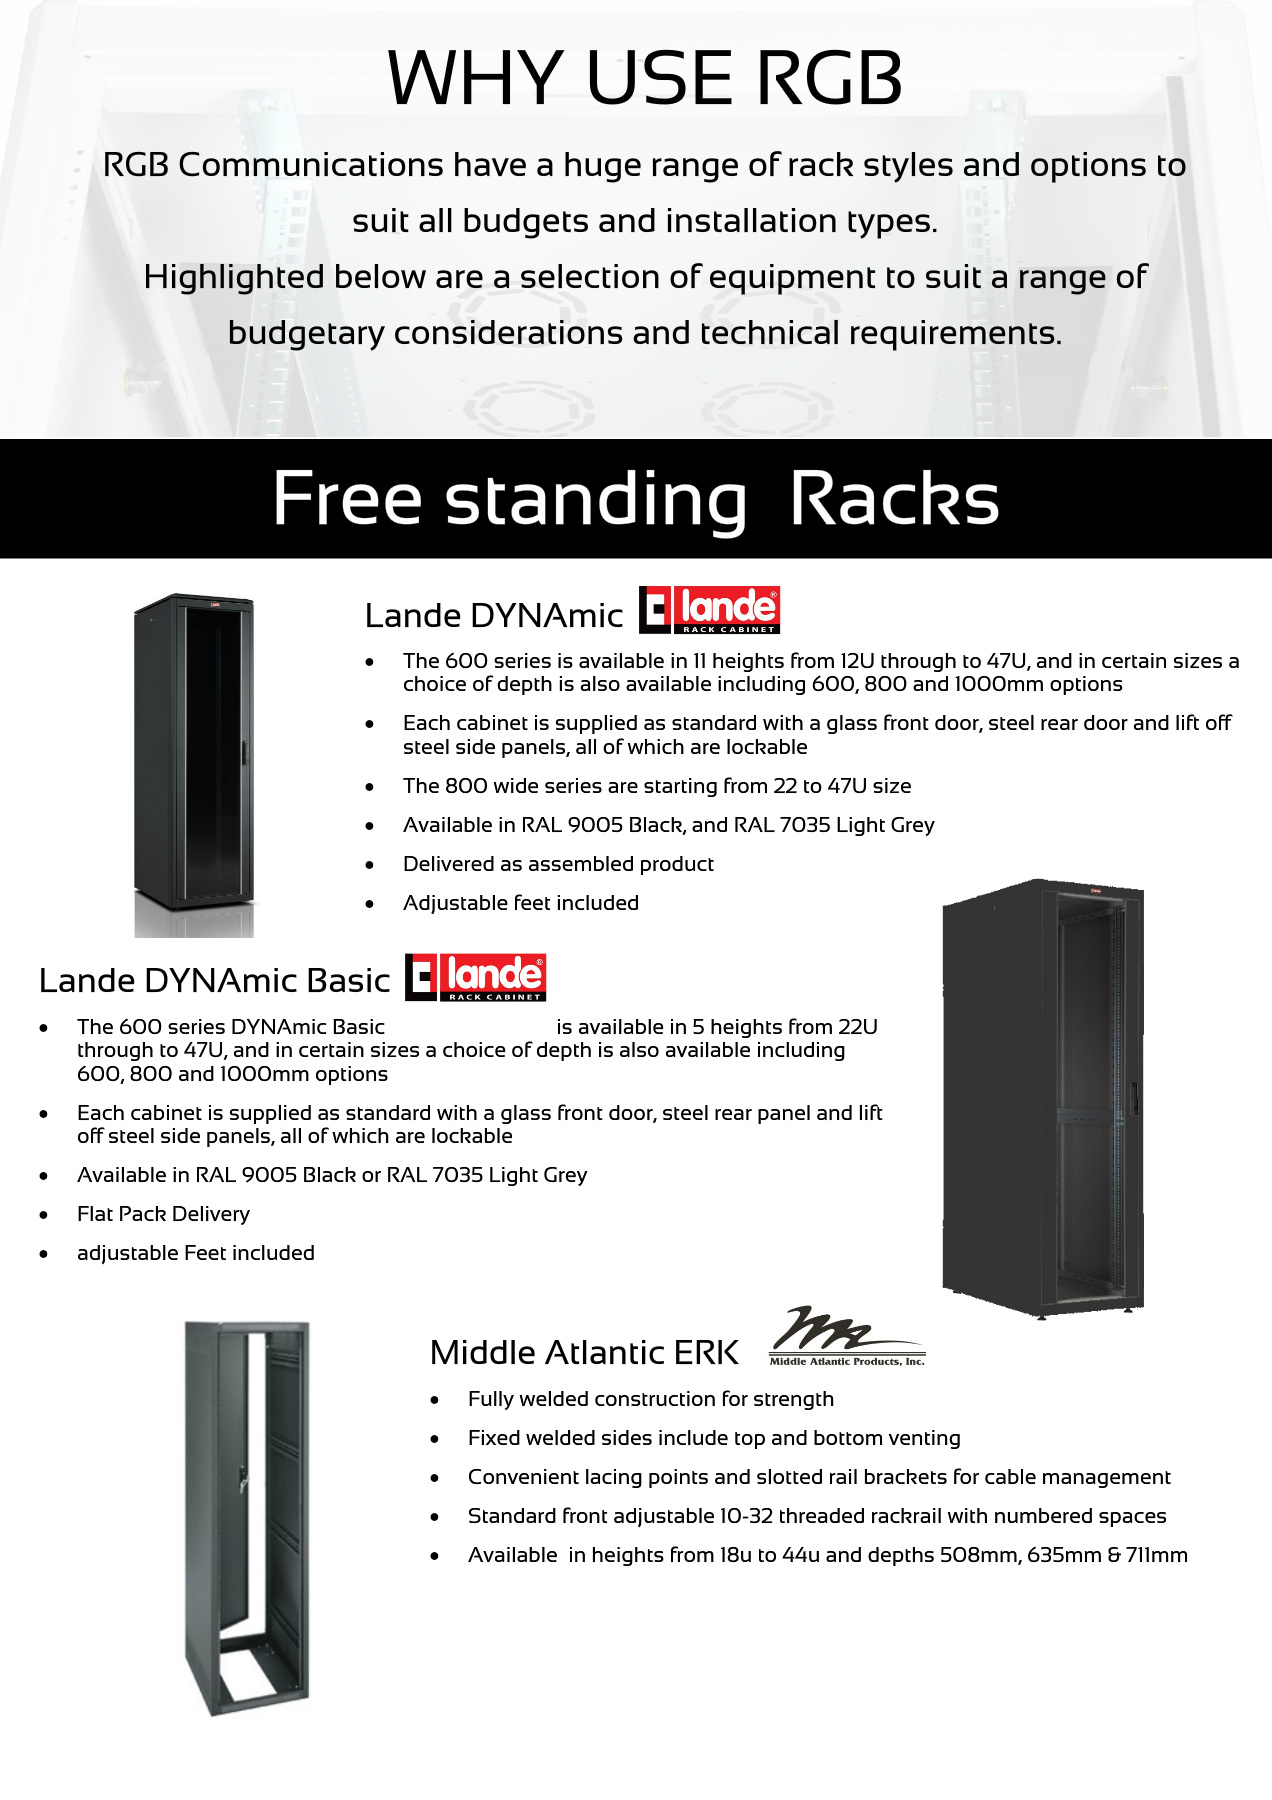 Racks and Power Product Selection Pages 1 - 10 - Text